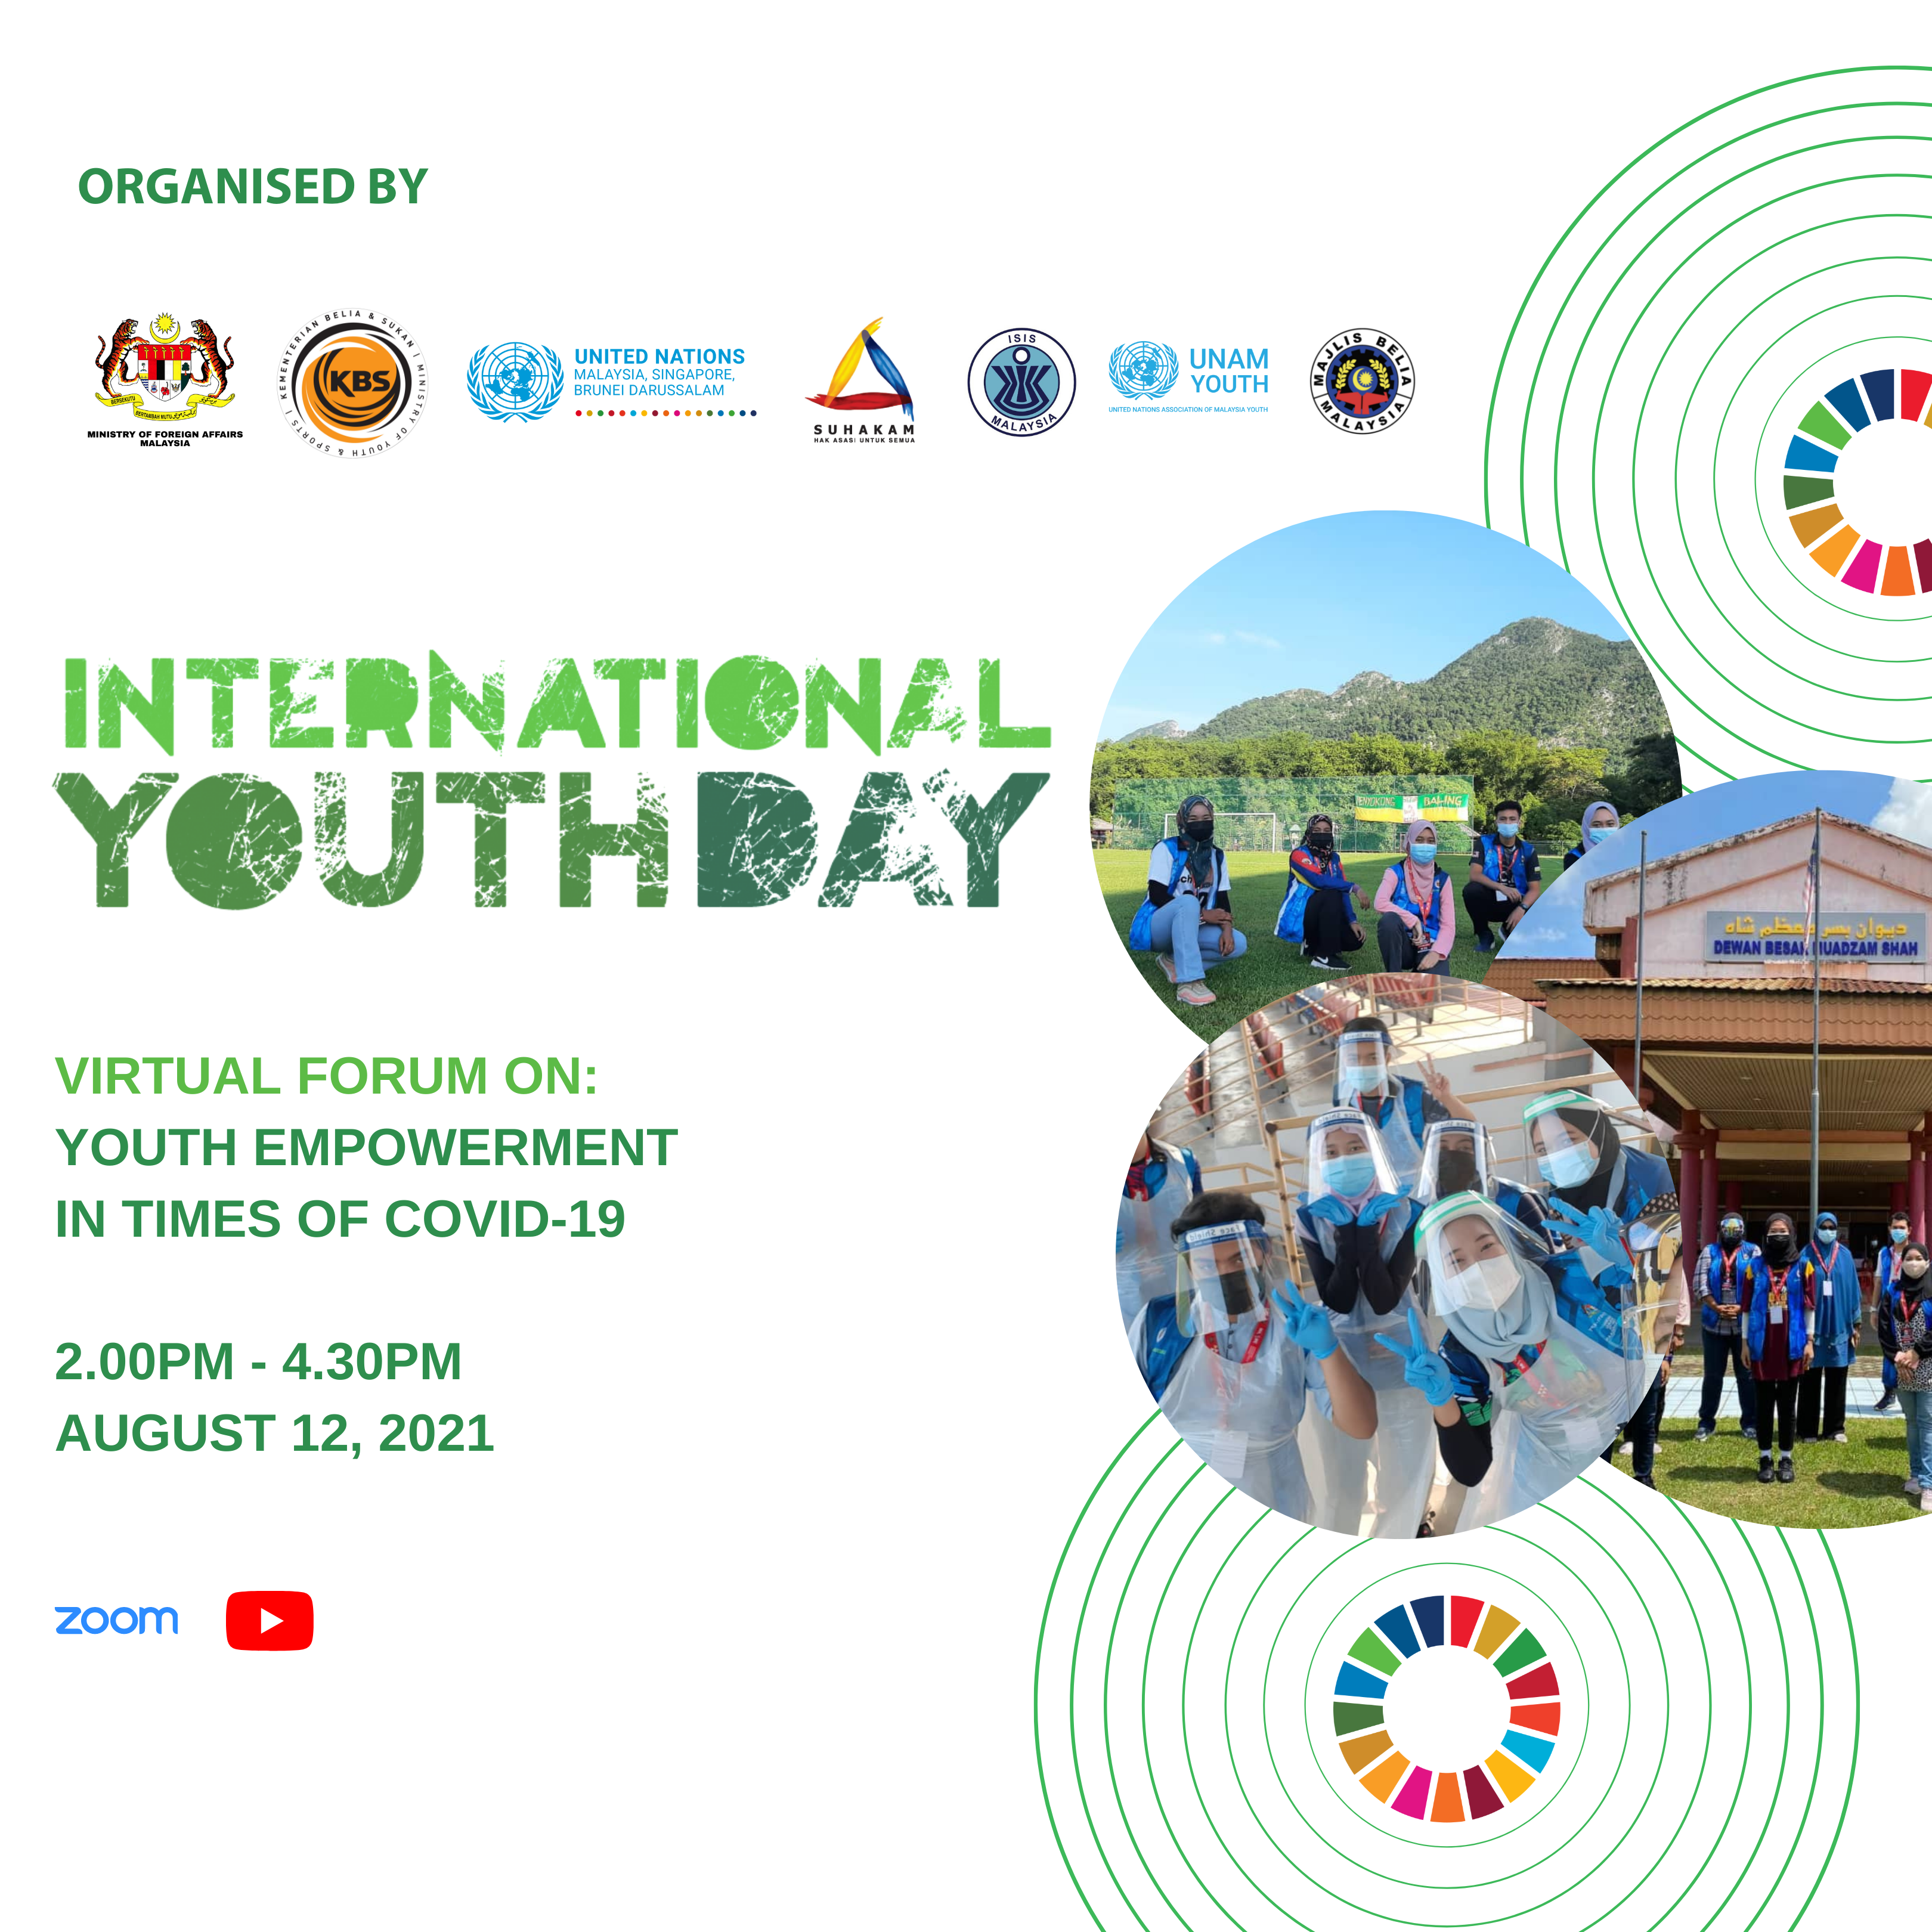 International Youth Day Virtual Forum - Youth Empowerment in times of COVID-19